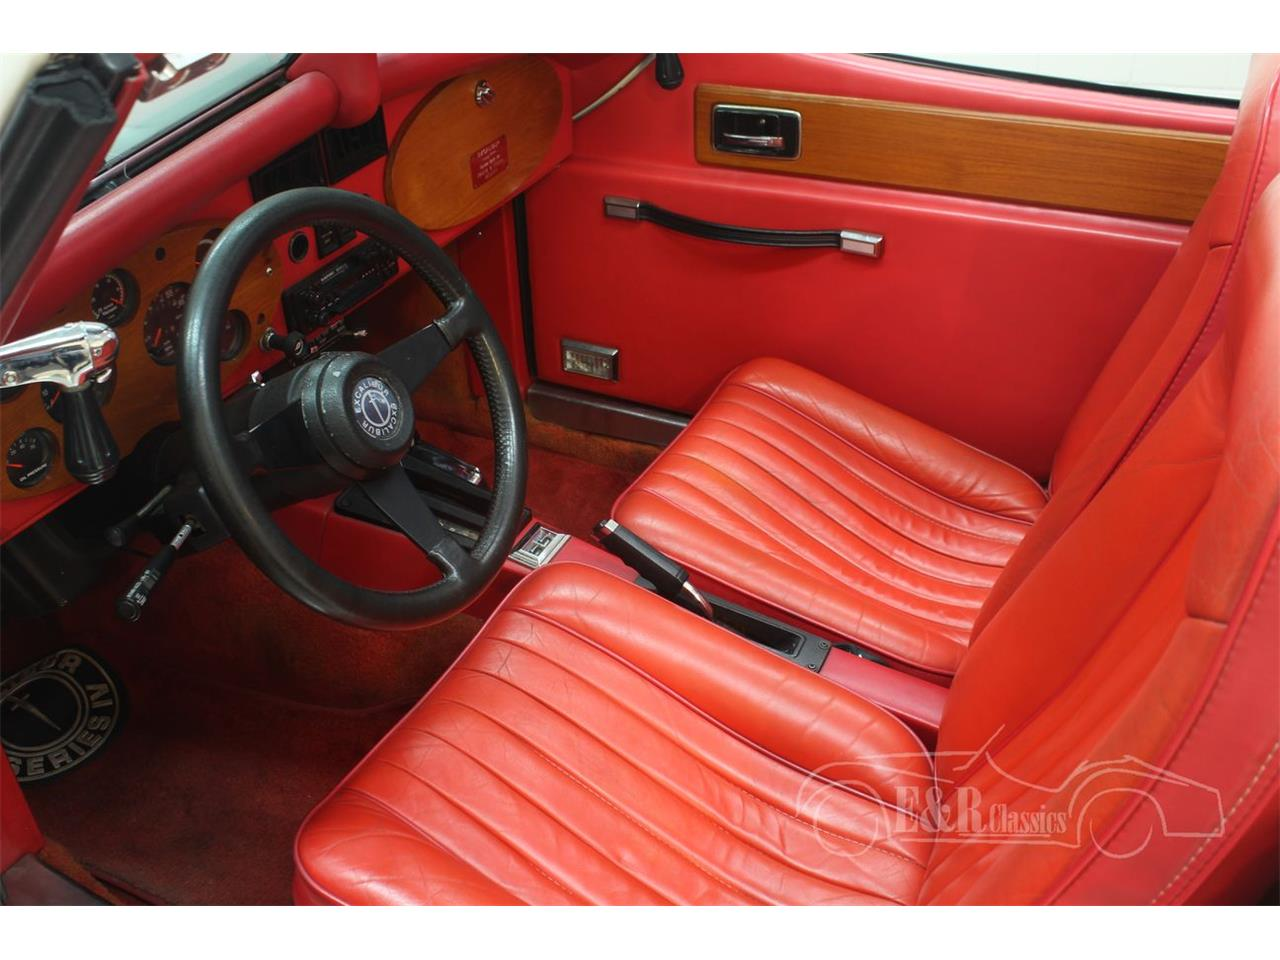 Large Picture of 1982 Series IV Phaeton - $78,450.00 - Q3GF